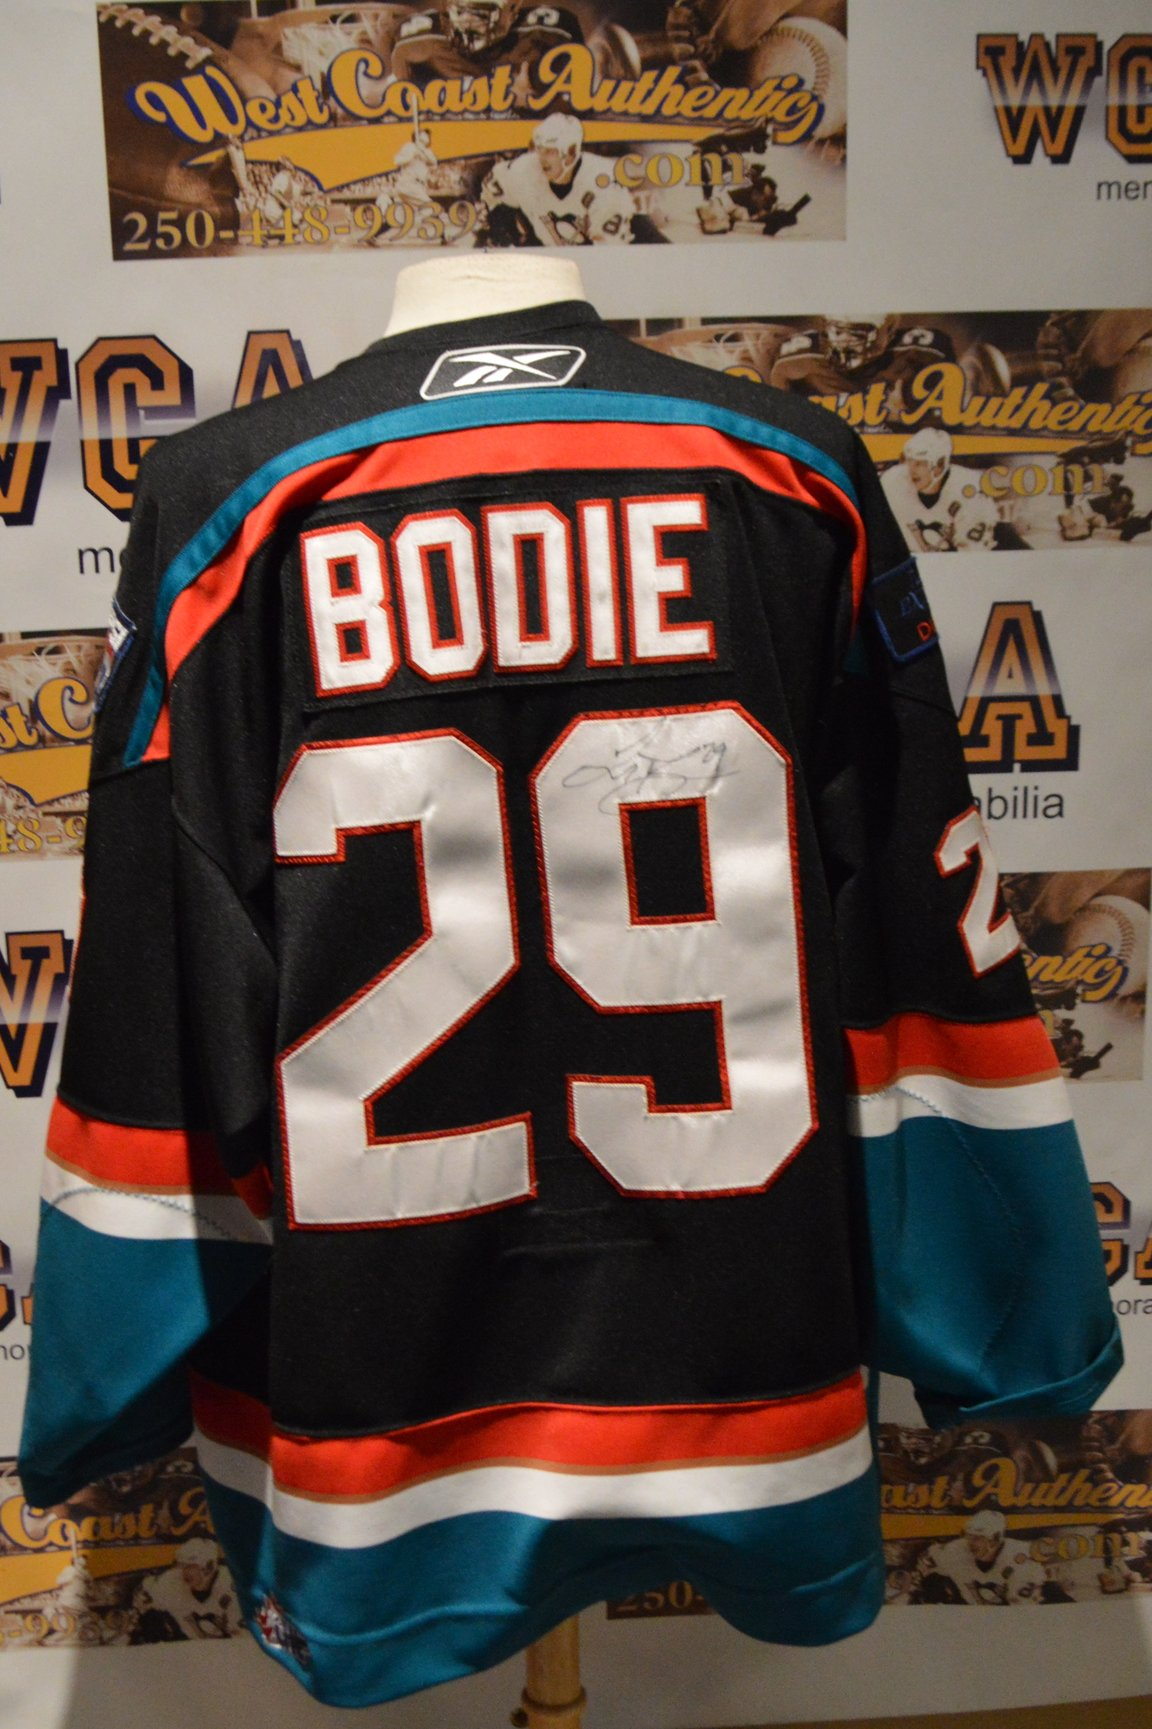 finest selection bfe04 2019a Troy Bodie Autographed Game Used Kelowna Rockets Jersey